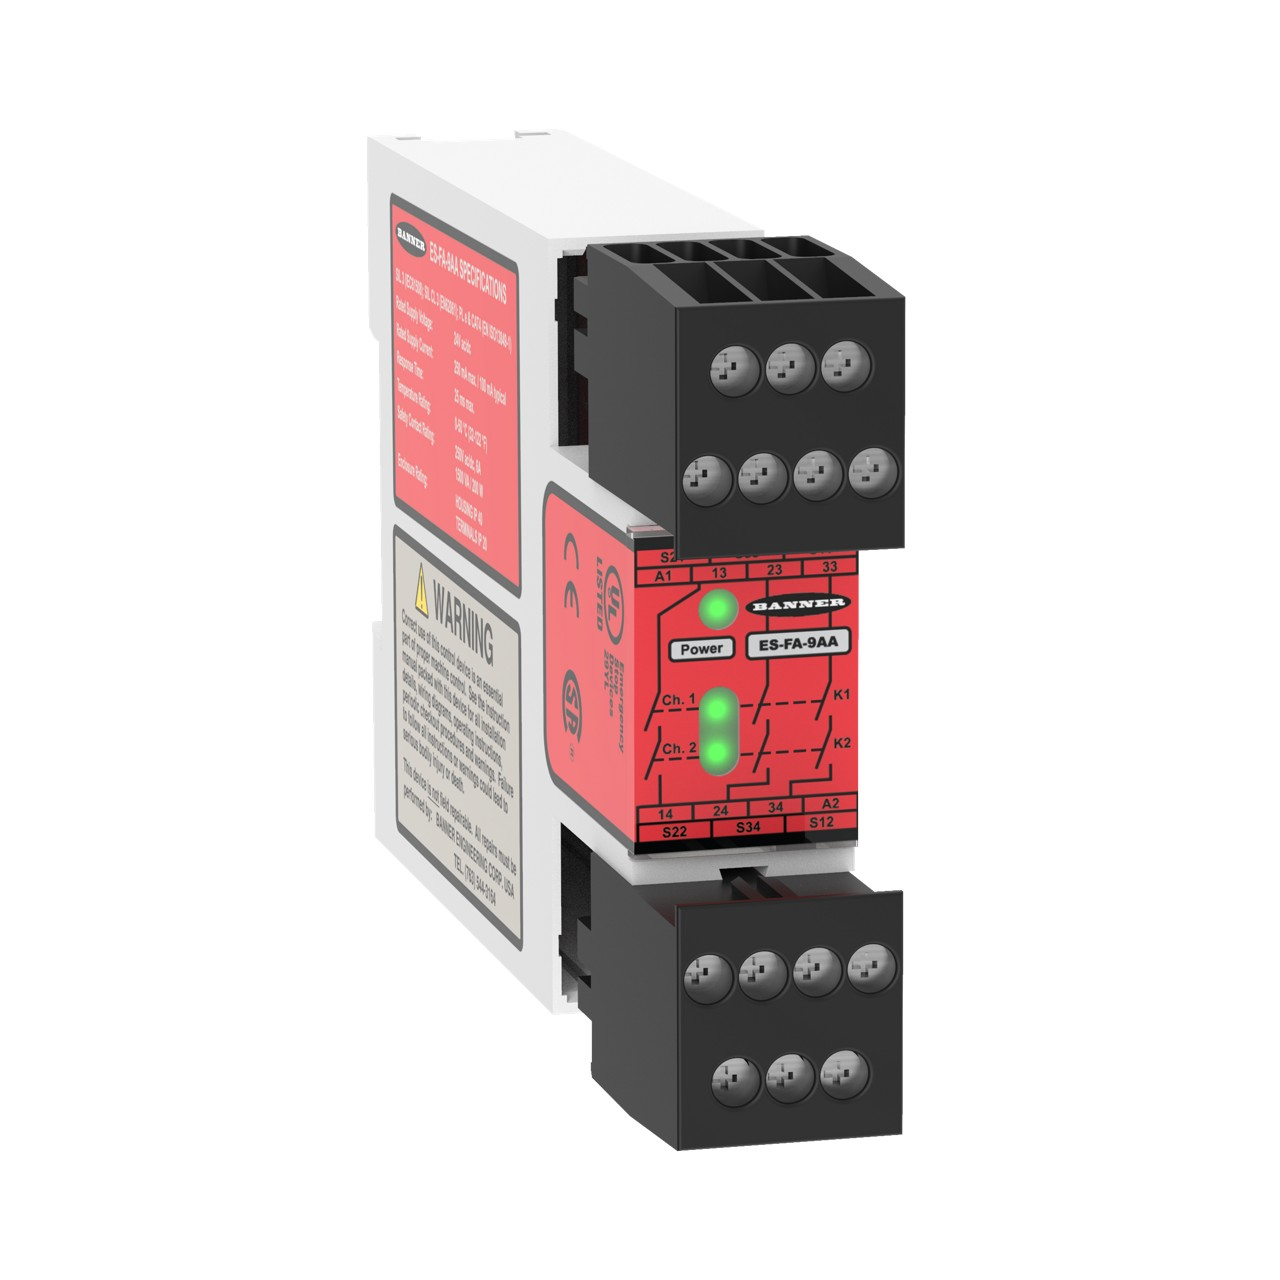 E-Stop & Guard Monitoring Safety Relays